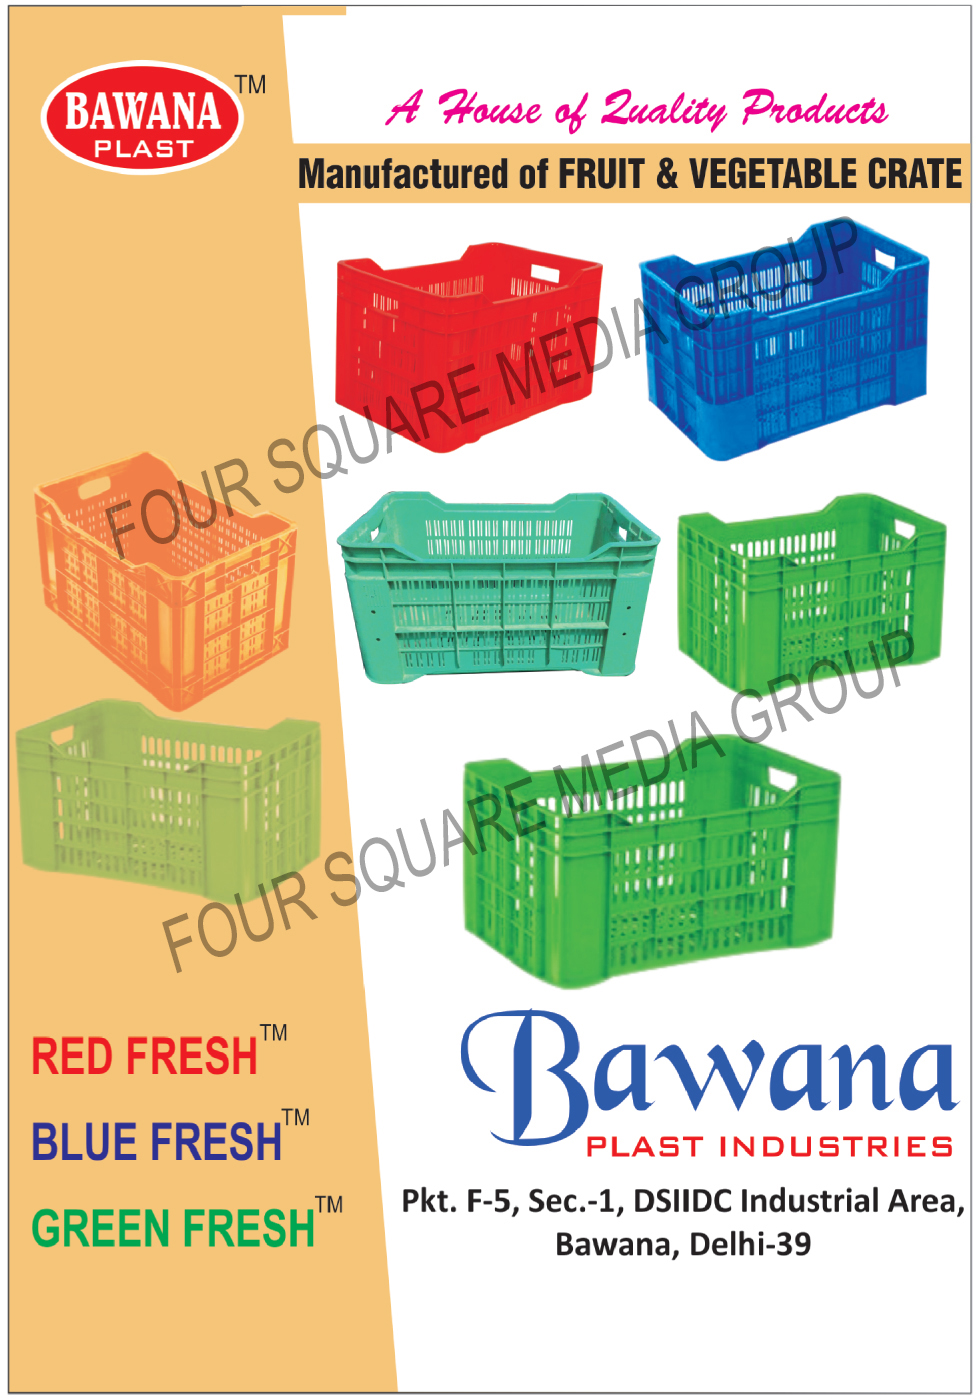 Fruit Plastic Crates, Vegetable Plastic Crates, Plastic Fruit Crates, Plastic Vegetable Crates